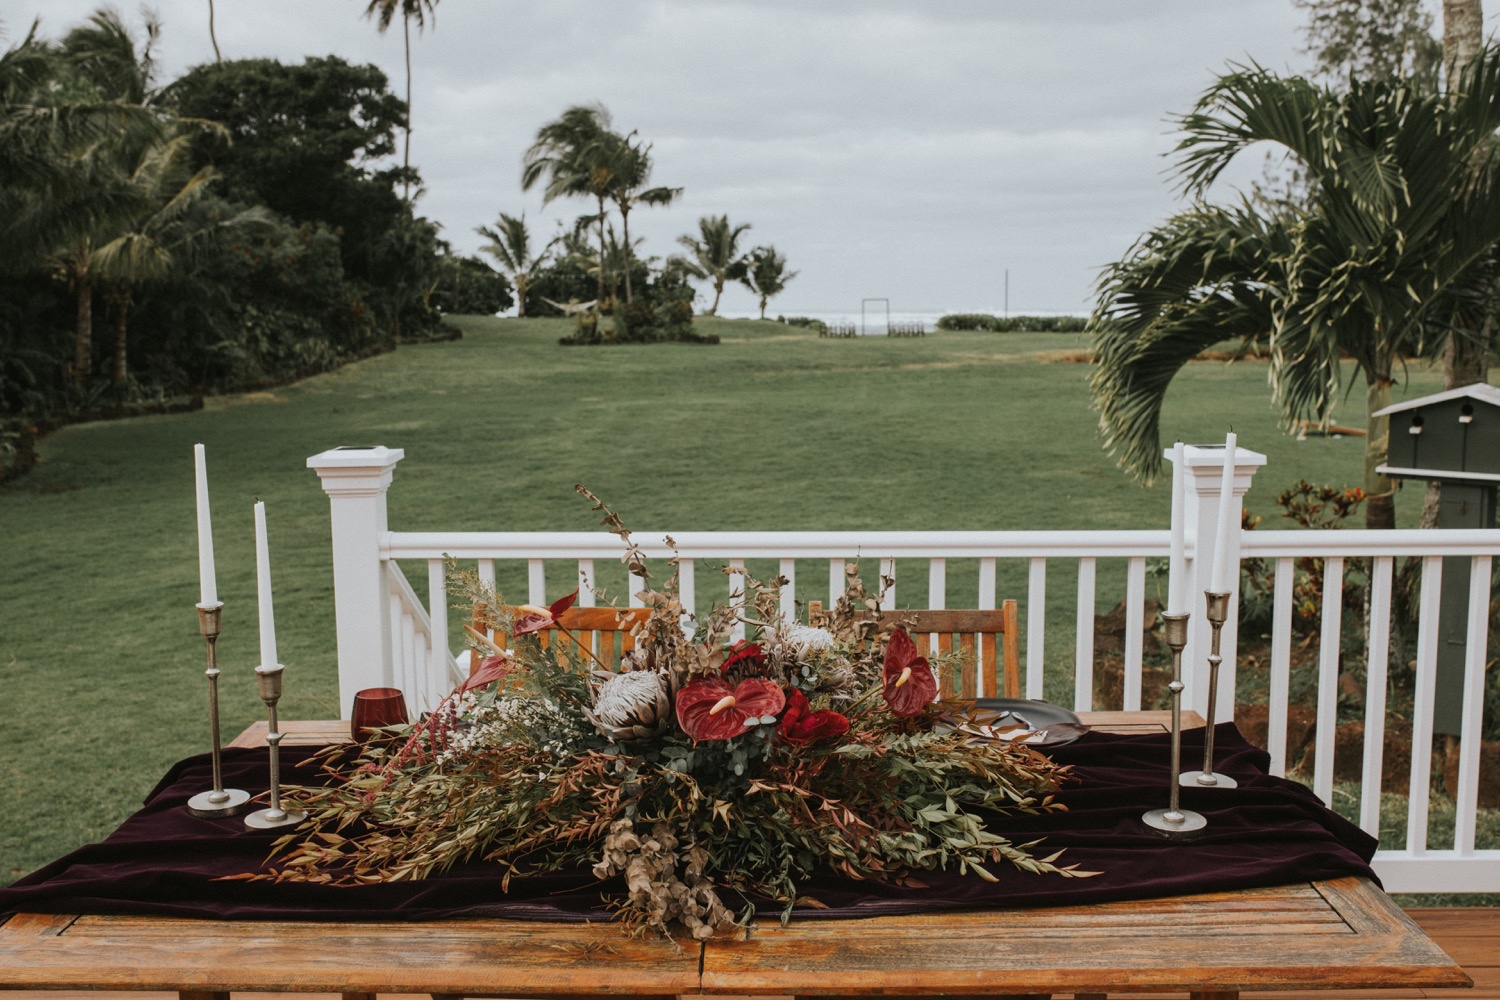 Loulu Palm Farm Estate, Loulu Palm Farm Estate Wedding, Oahu Wedding Photographer, Hawaii Wedding Photographer, Oahu Beach Wedding, Eco-friendly Wedding, Eco-Friendly Wedding Venue